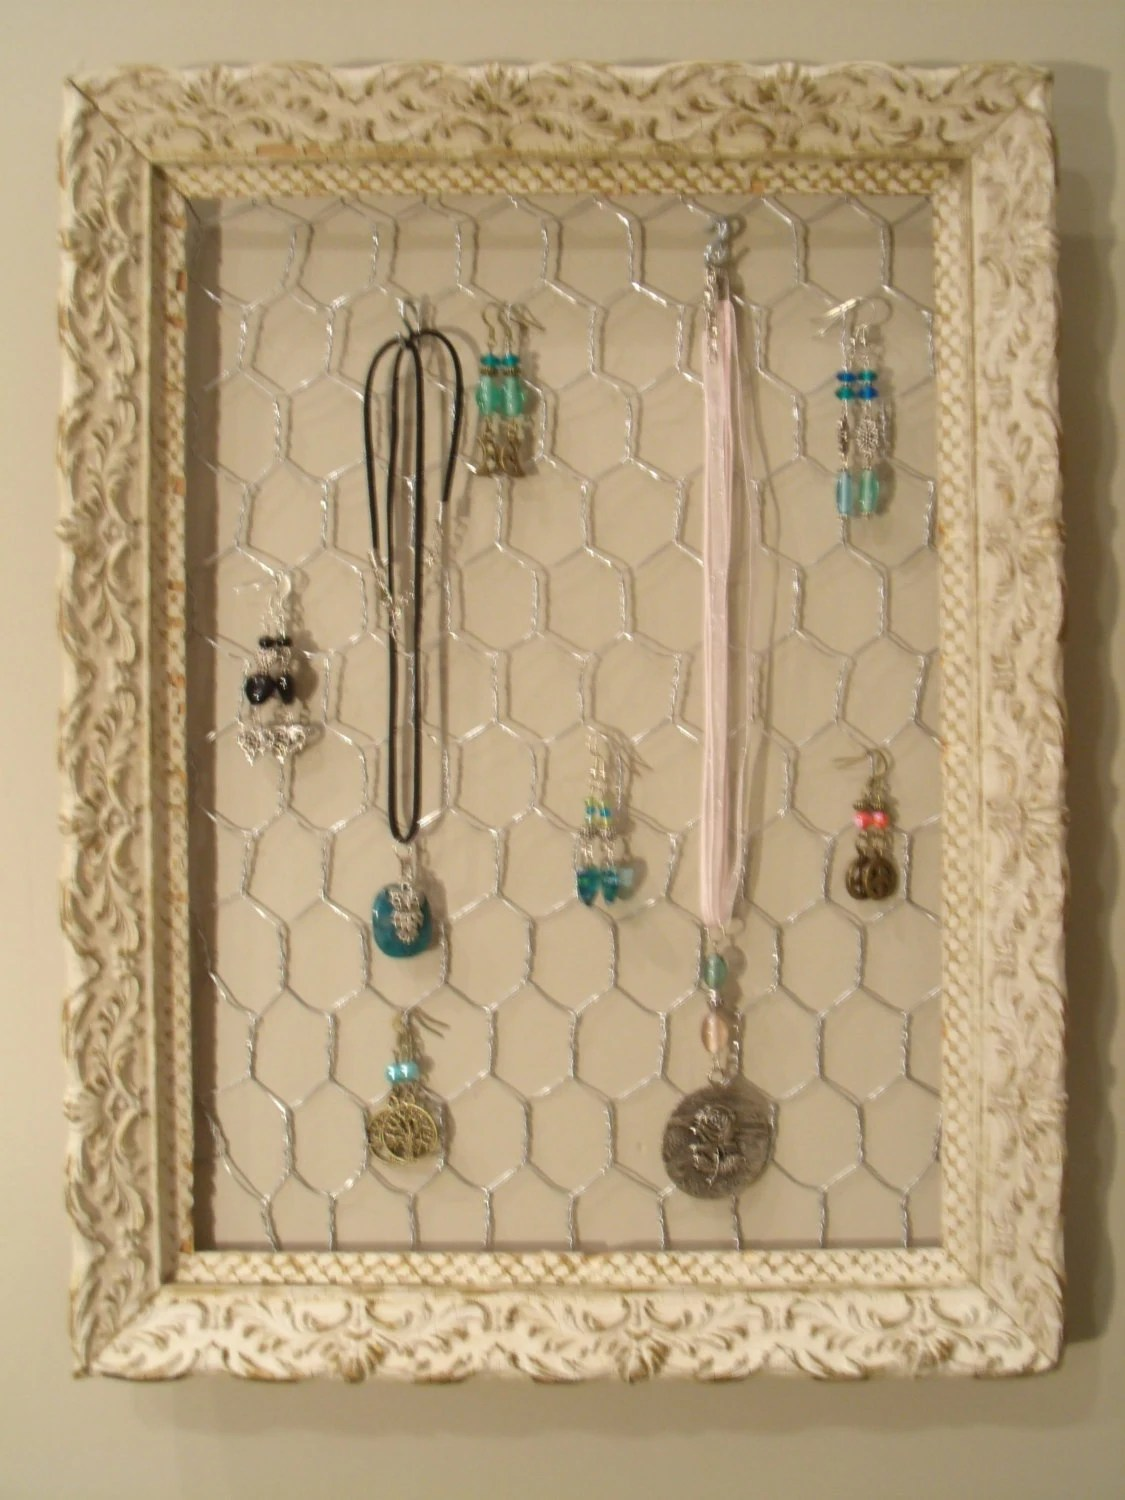 Schmuck Bilderrahmen Antique Frame Jewelry Organizer Display Holder